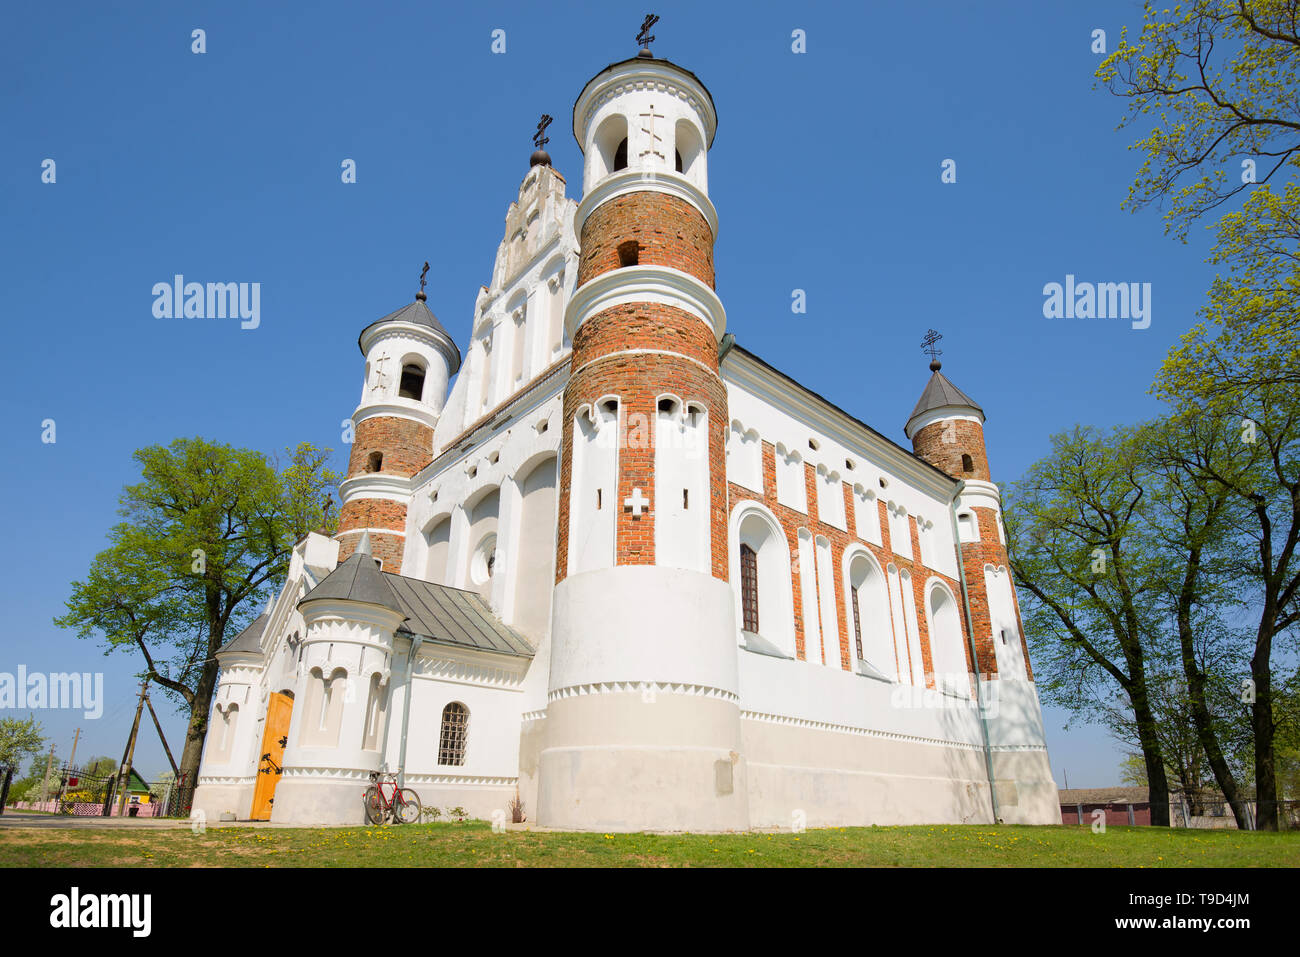 The fortified church of the Nativity of the Virgin Mary close up on a sunny April day. Murovanka, Belarus - Stock Image